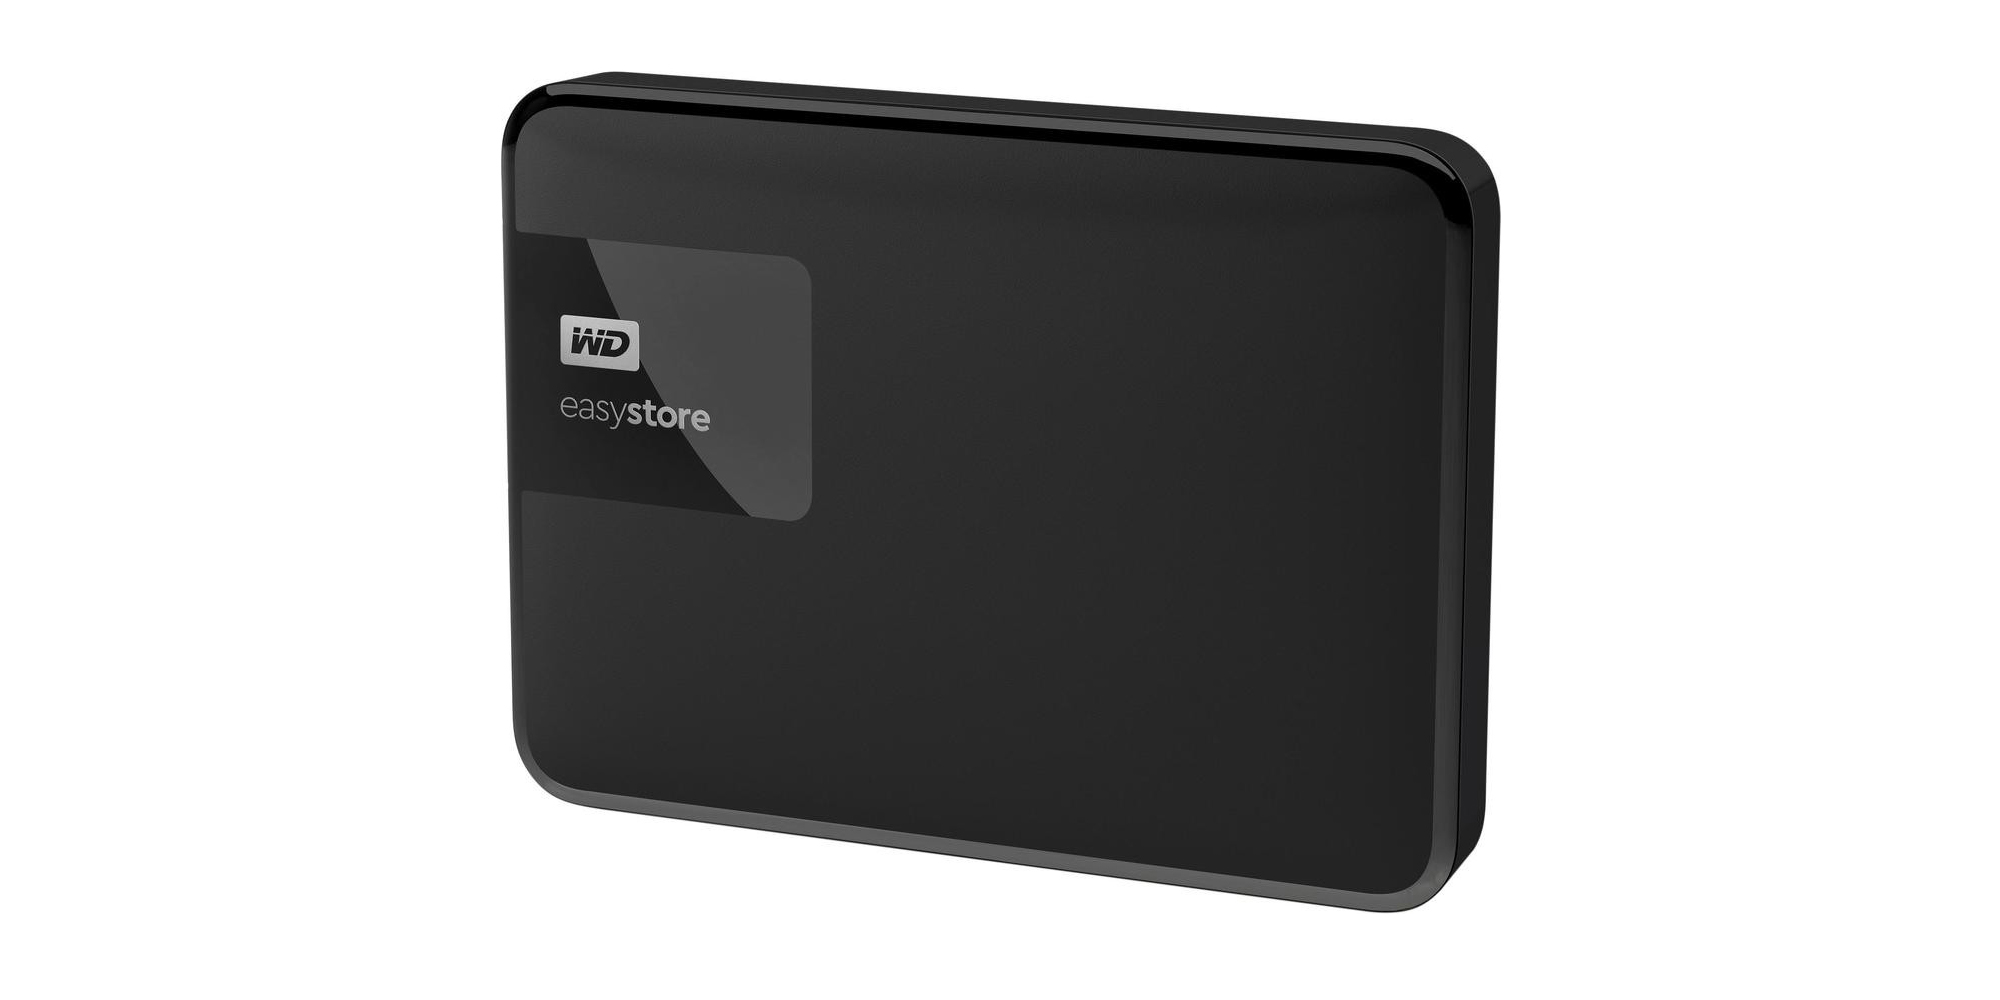 WD easystore 2TB External USB 3.0 Portable Hard Drive for $60, today only